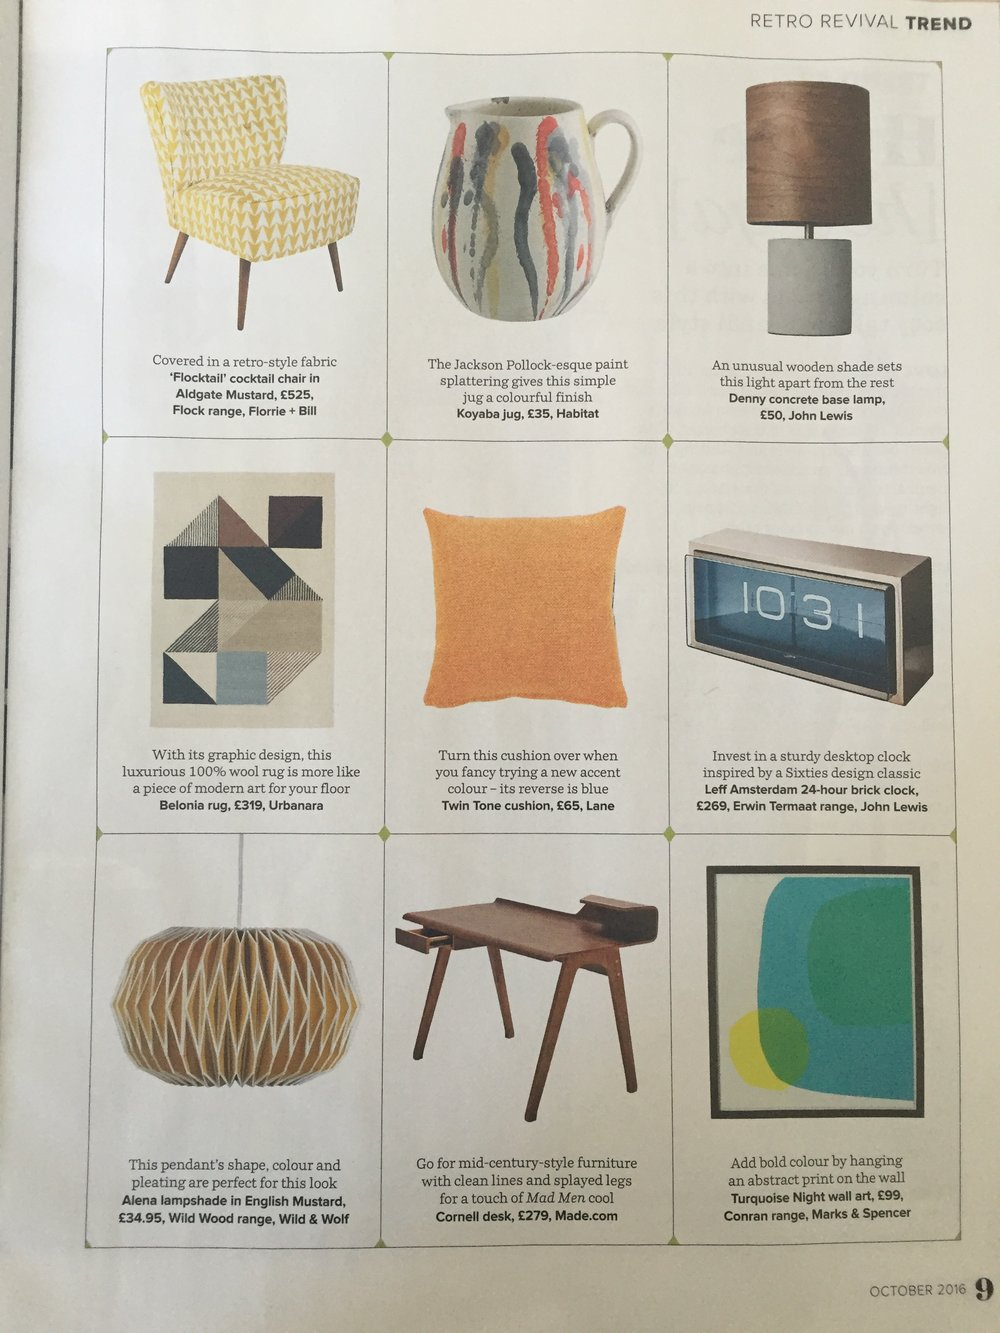 Ideal Home, October 2016, Lane Twin Tone Cushion -  Seville Orange & Mallard Blue